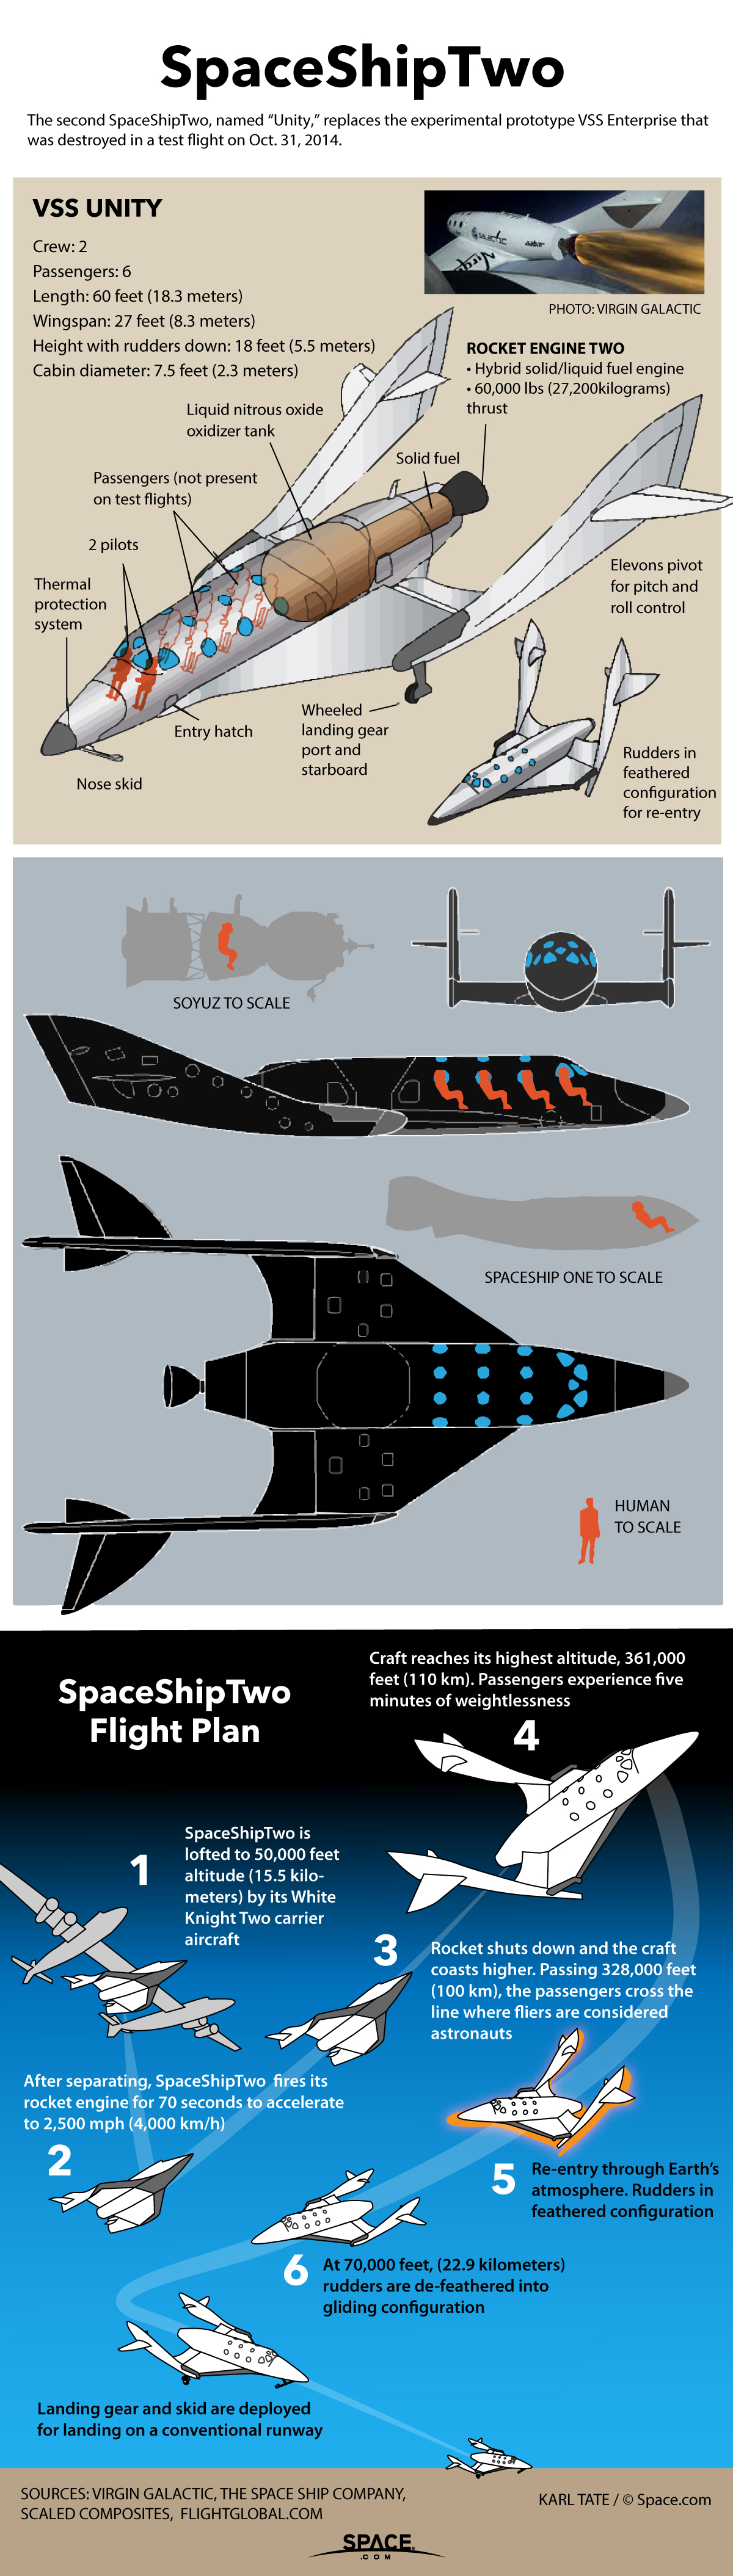 How Virgin Galactic's SpaceShipTwo Passenger Space Plane Works (Infographic)